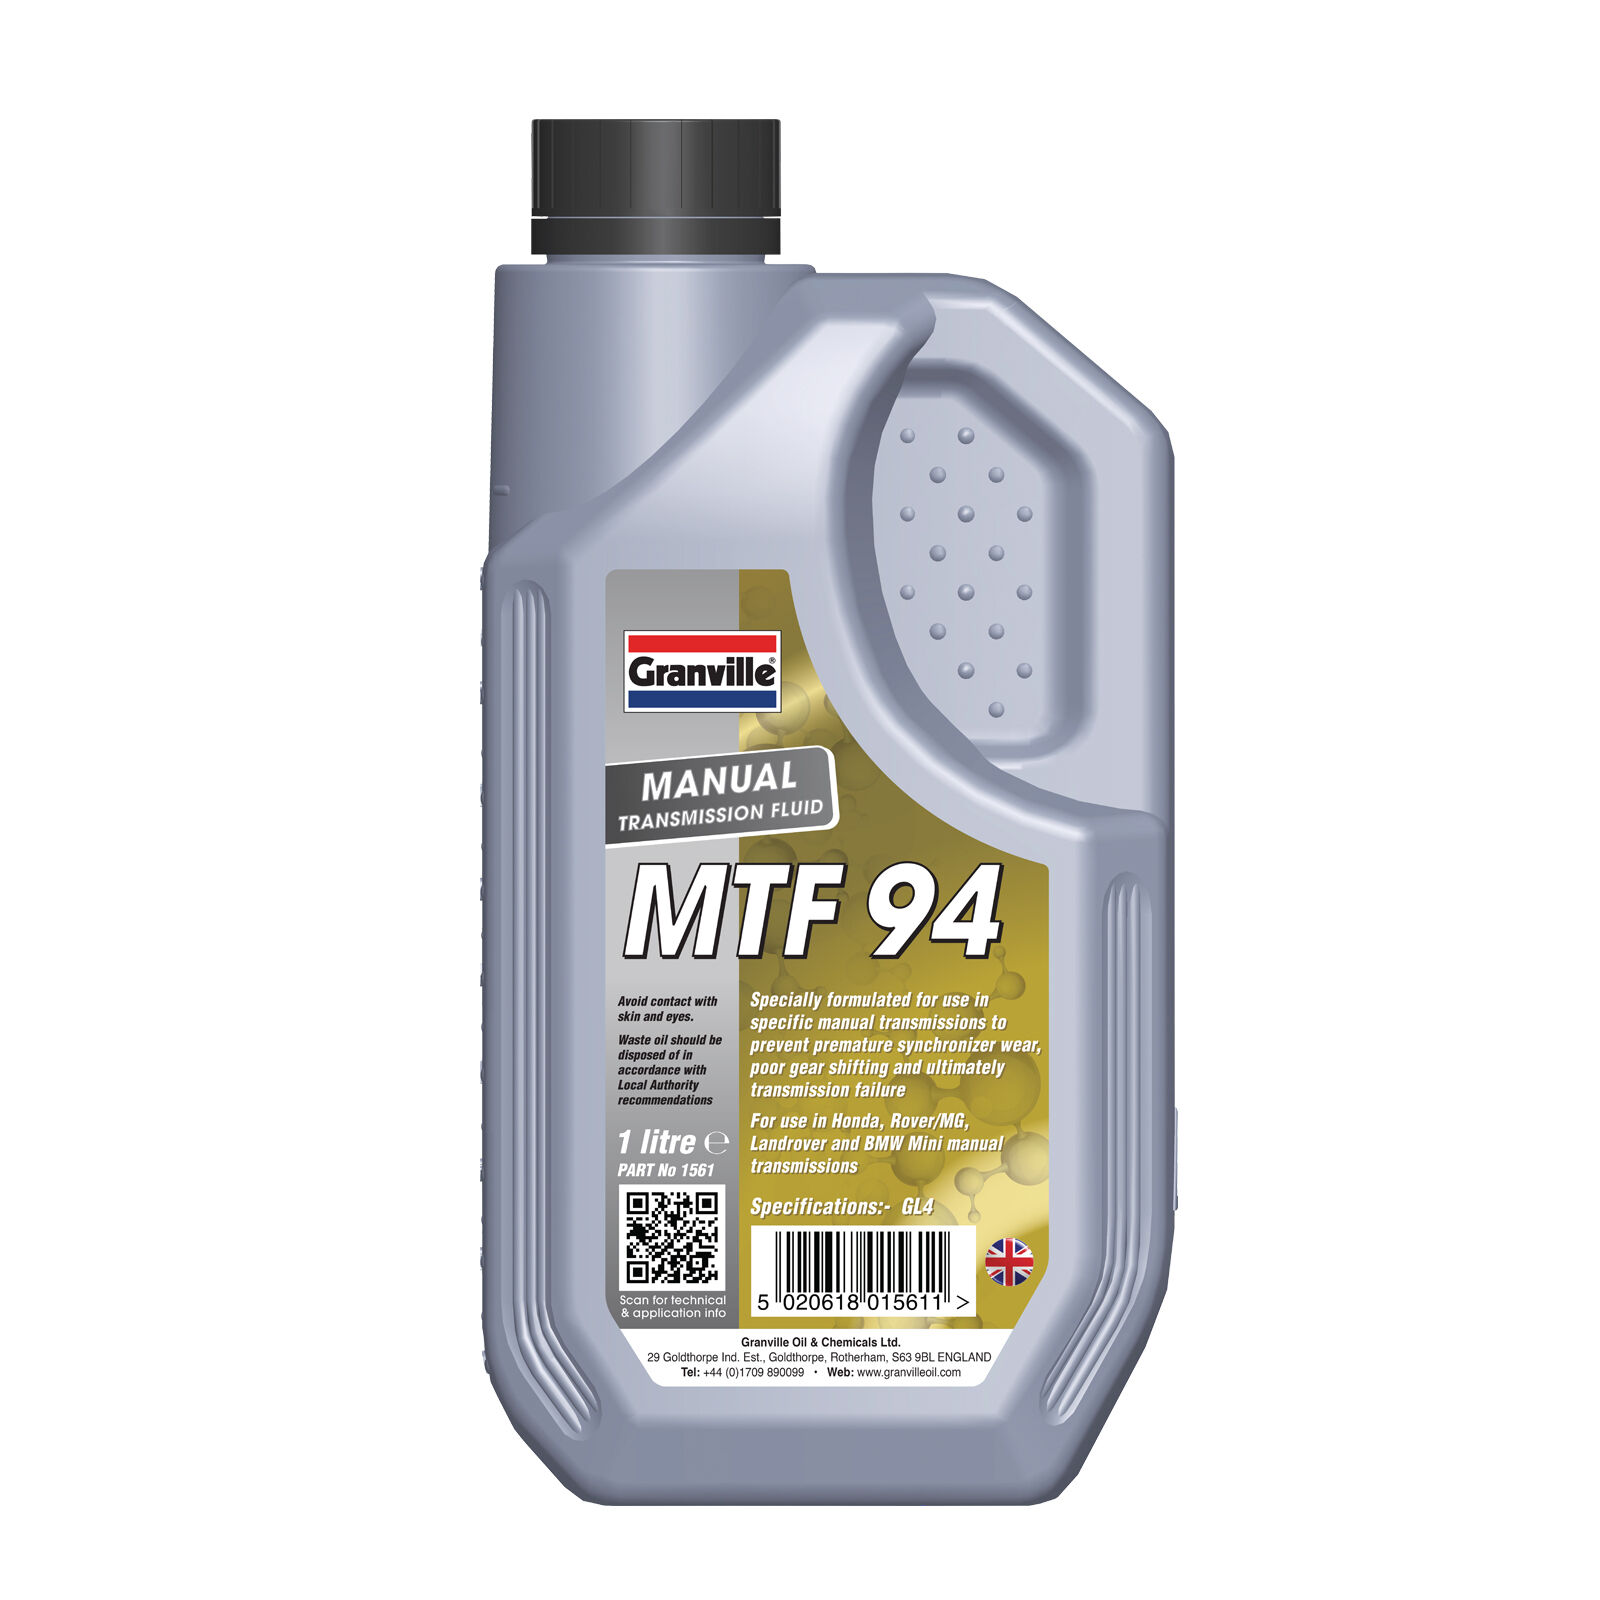 res fluid mercedes vauxhall inflow global transmission oil manual benz p s original technicalissues content inflowcomponent